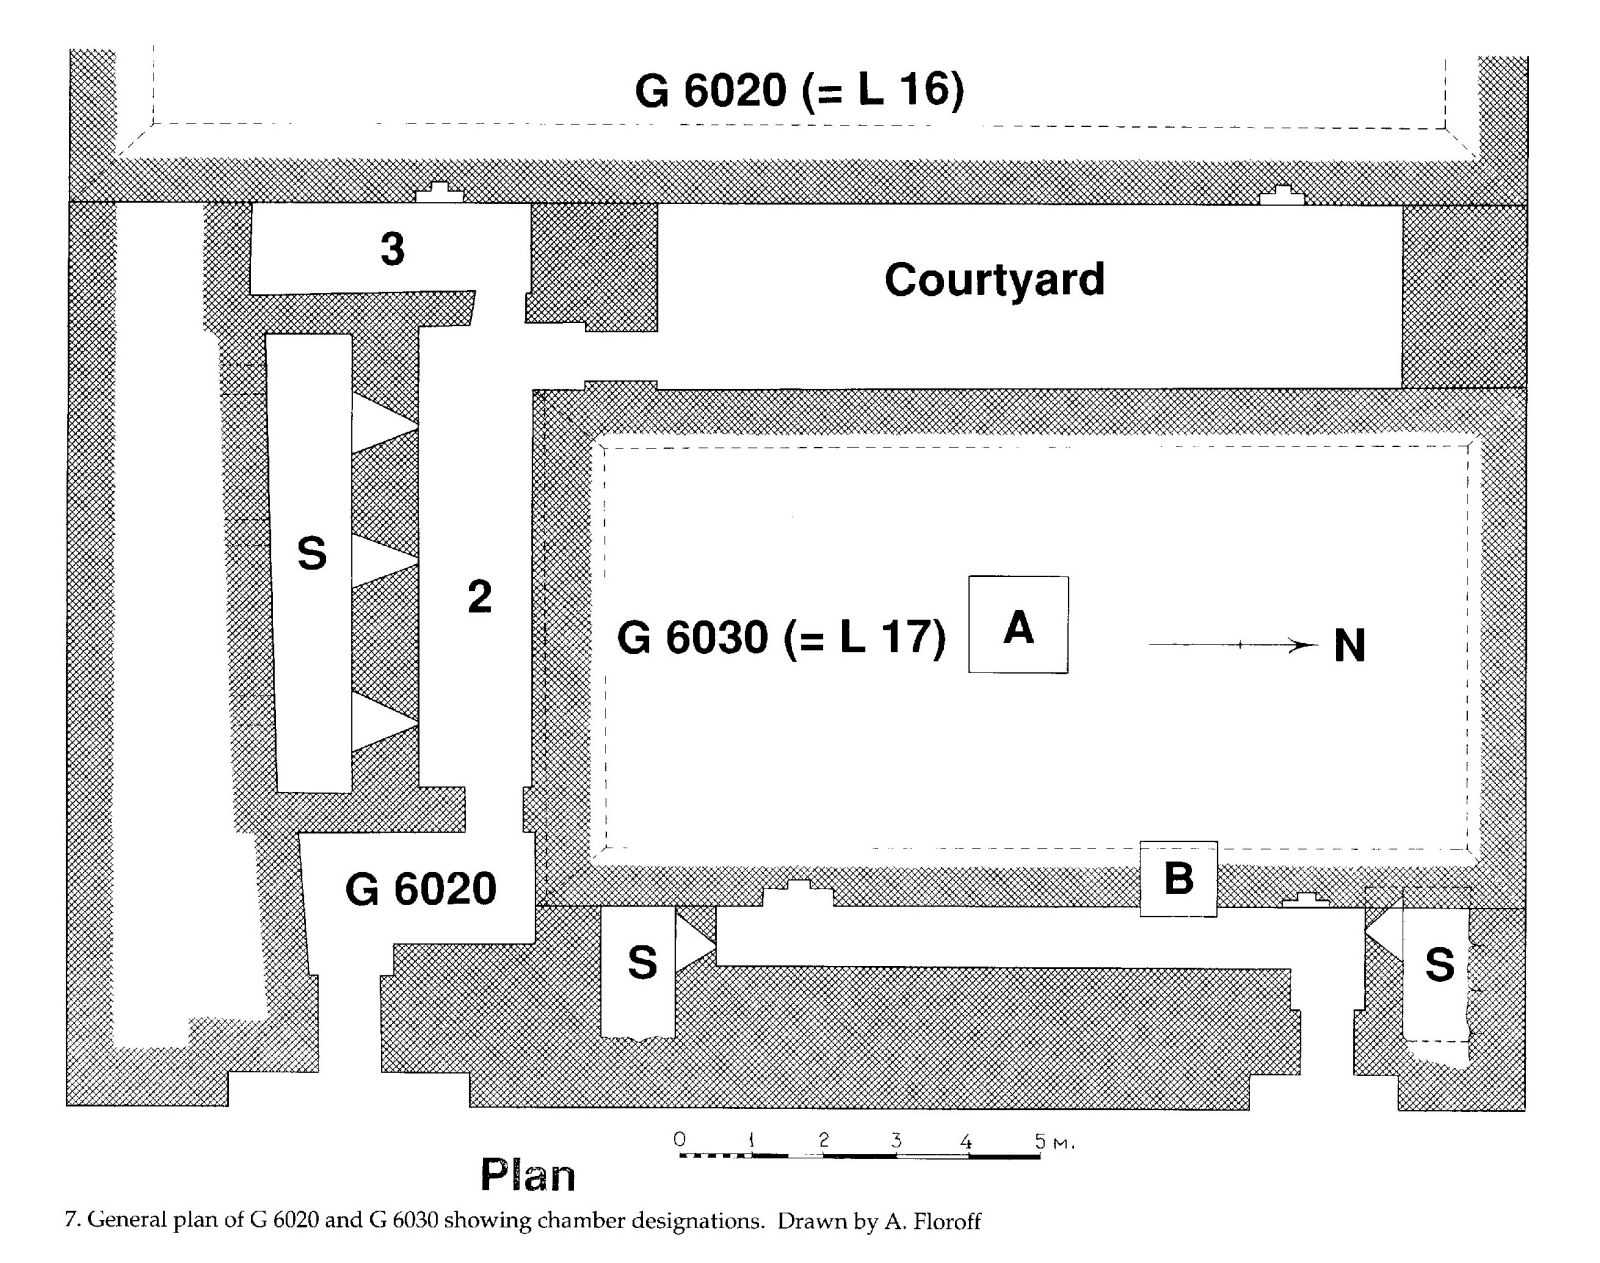 Maps and plans: Plan of G 6020 and G 6030, with chamber designations